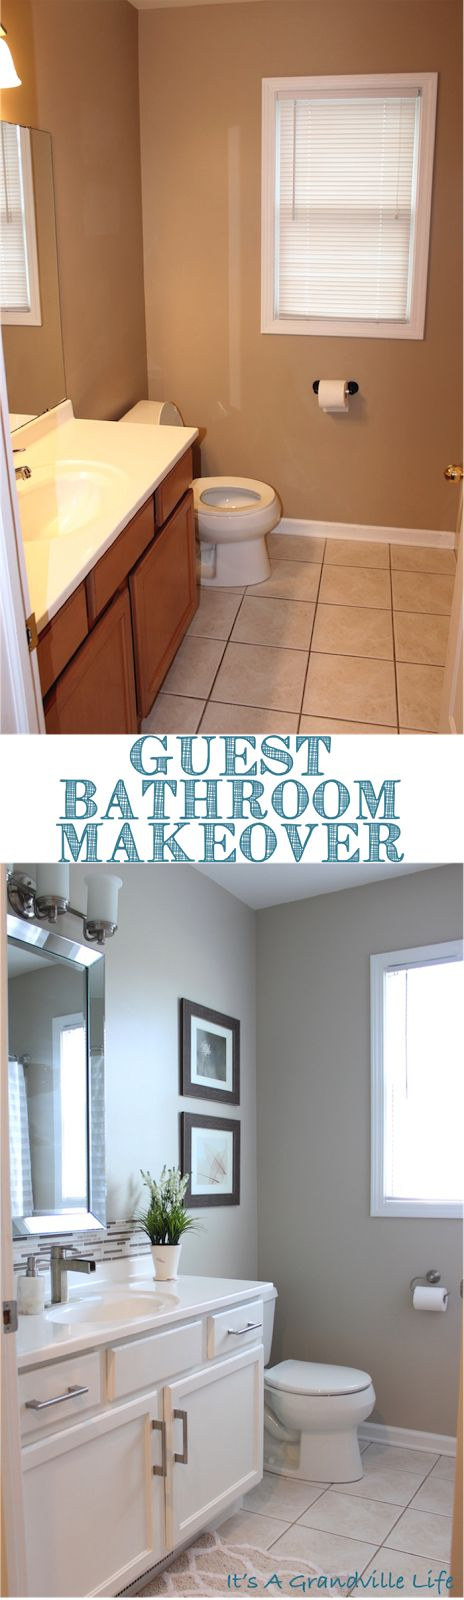 Easily Transform Your Bathroom With Some Paint And New Hardware See The Transformation And Diy